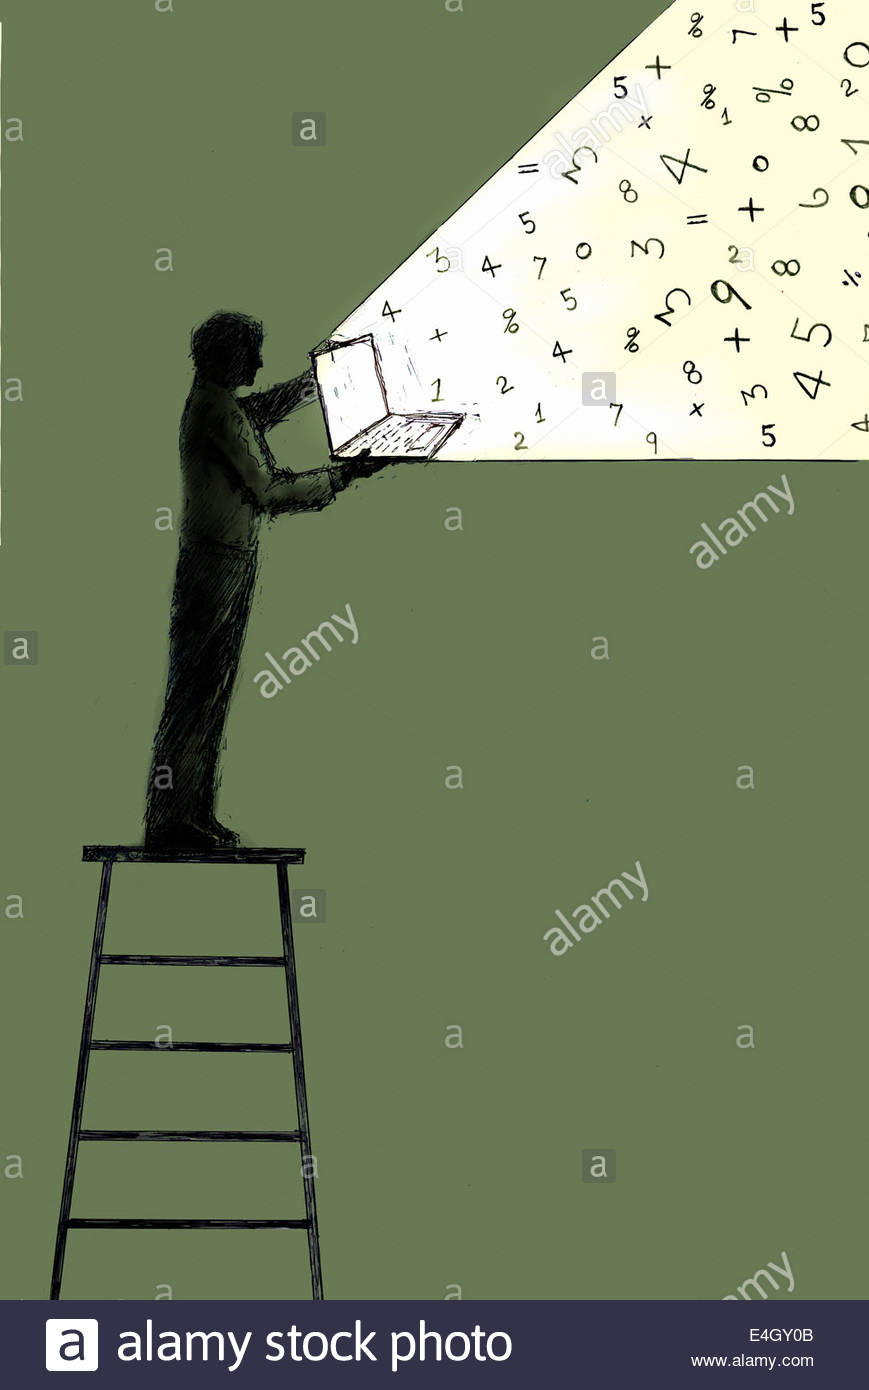 Numbers streaming from open laptop held by man standing on top of ladder - Stock Image